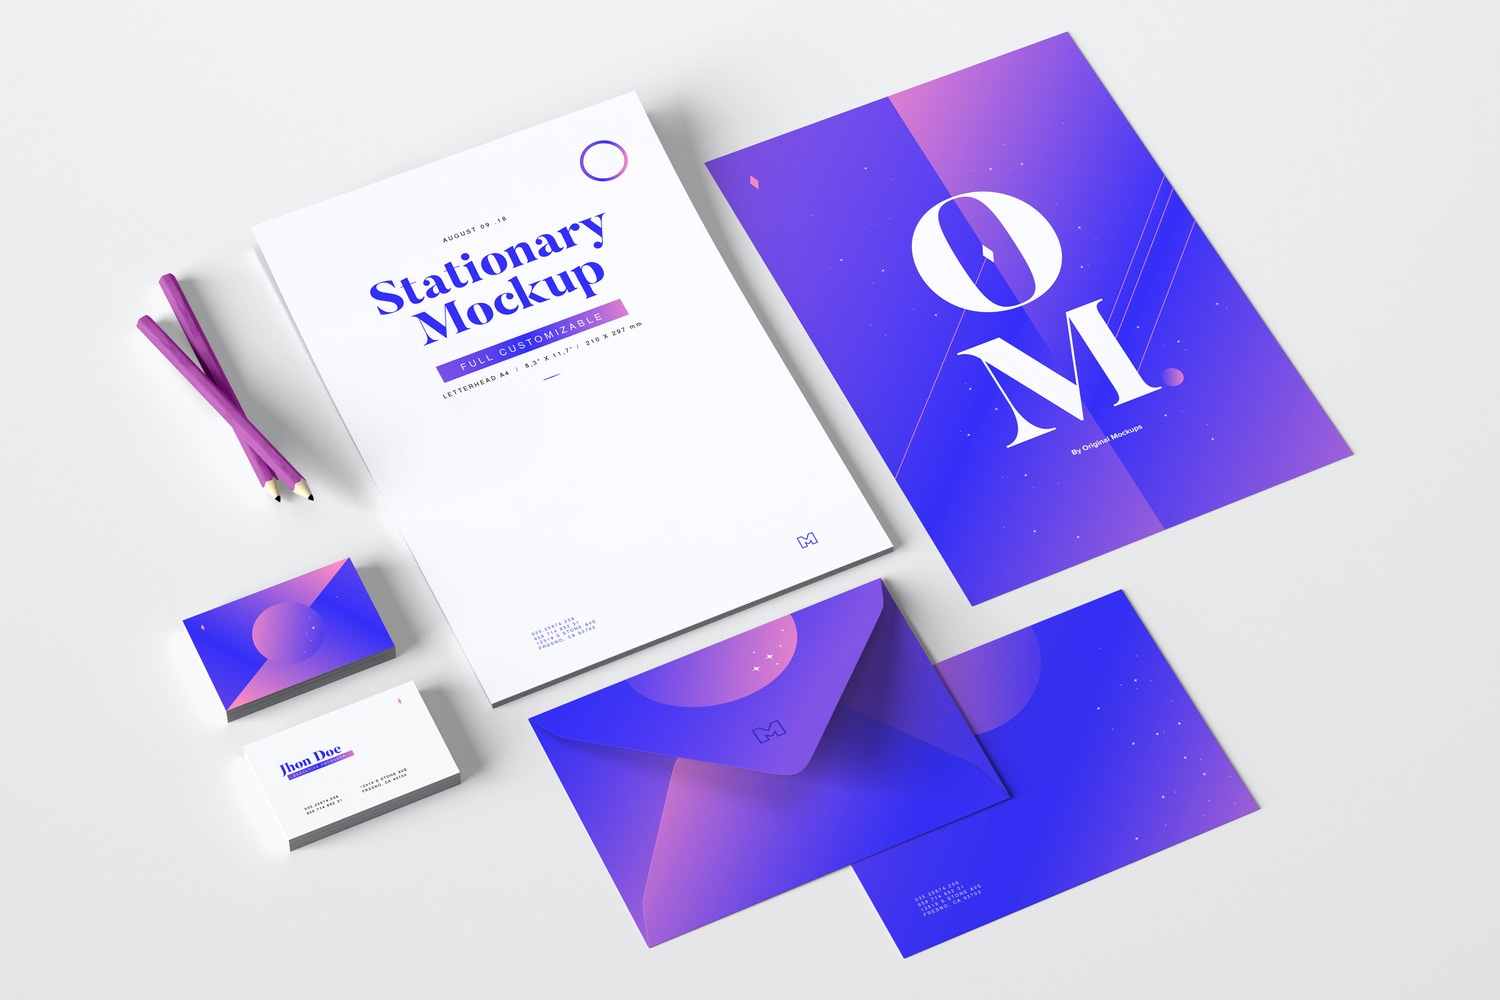 Stationery Mockup 01 by Original Mockups on Original Mockups